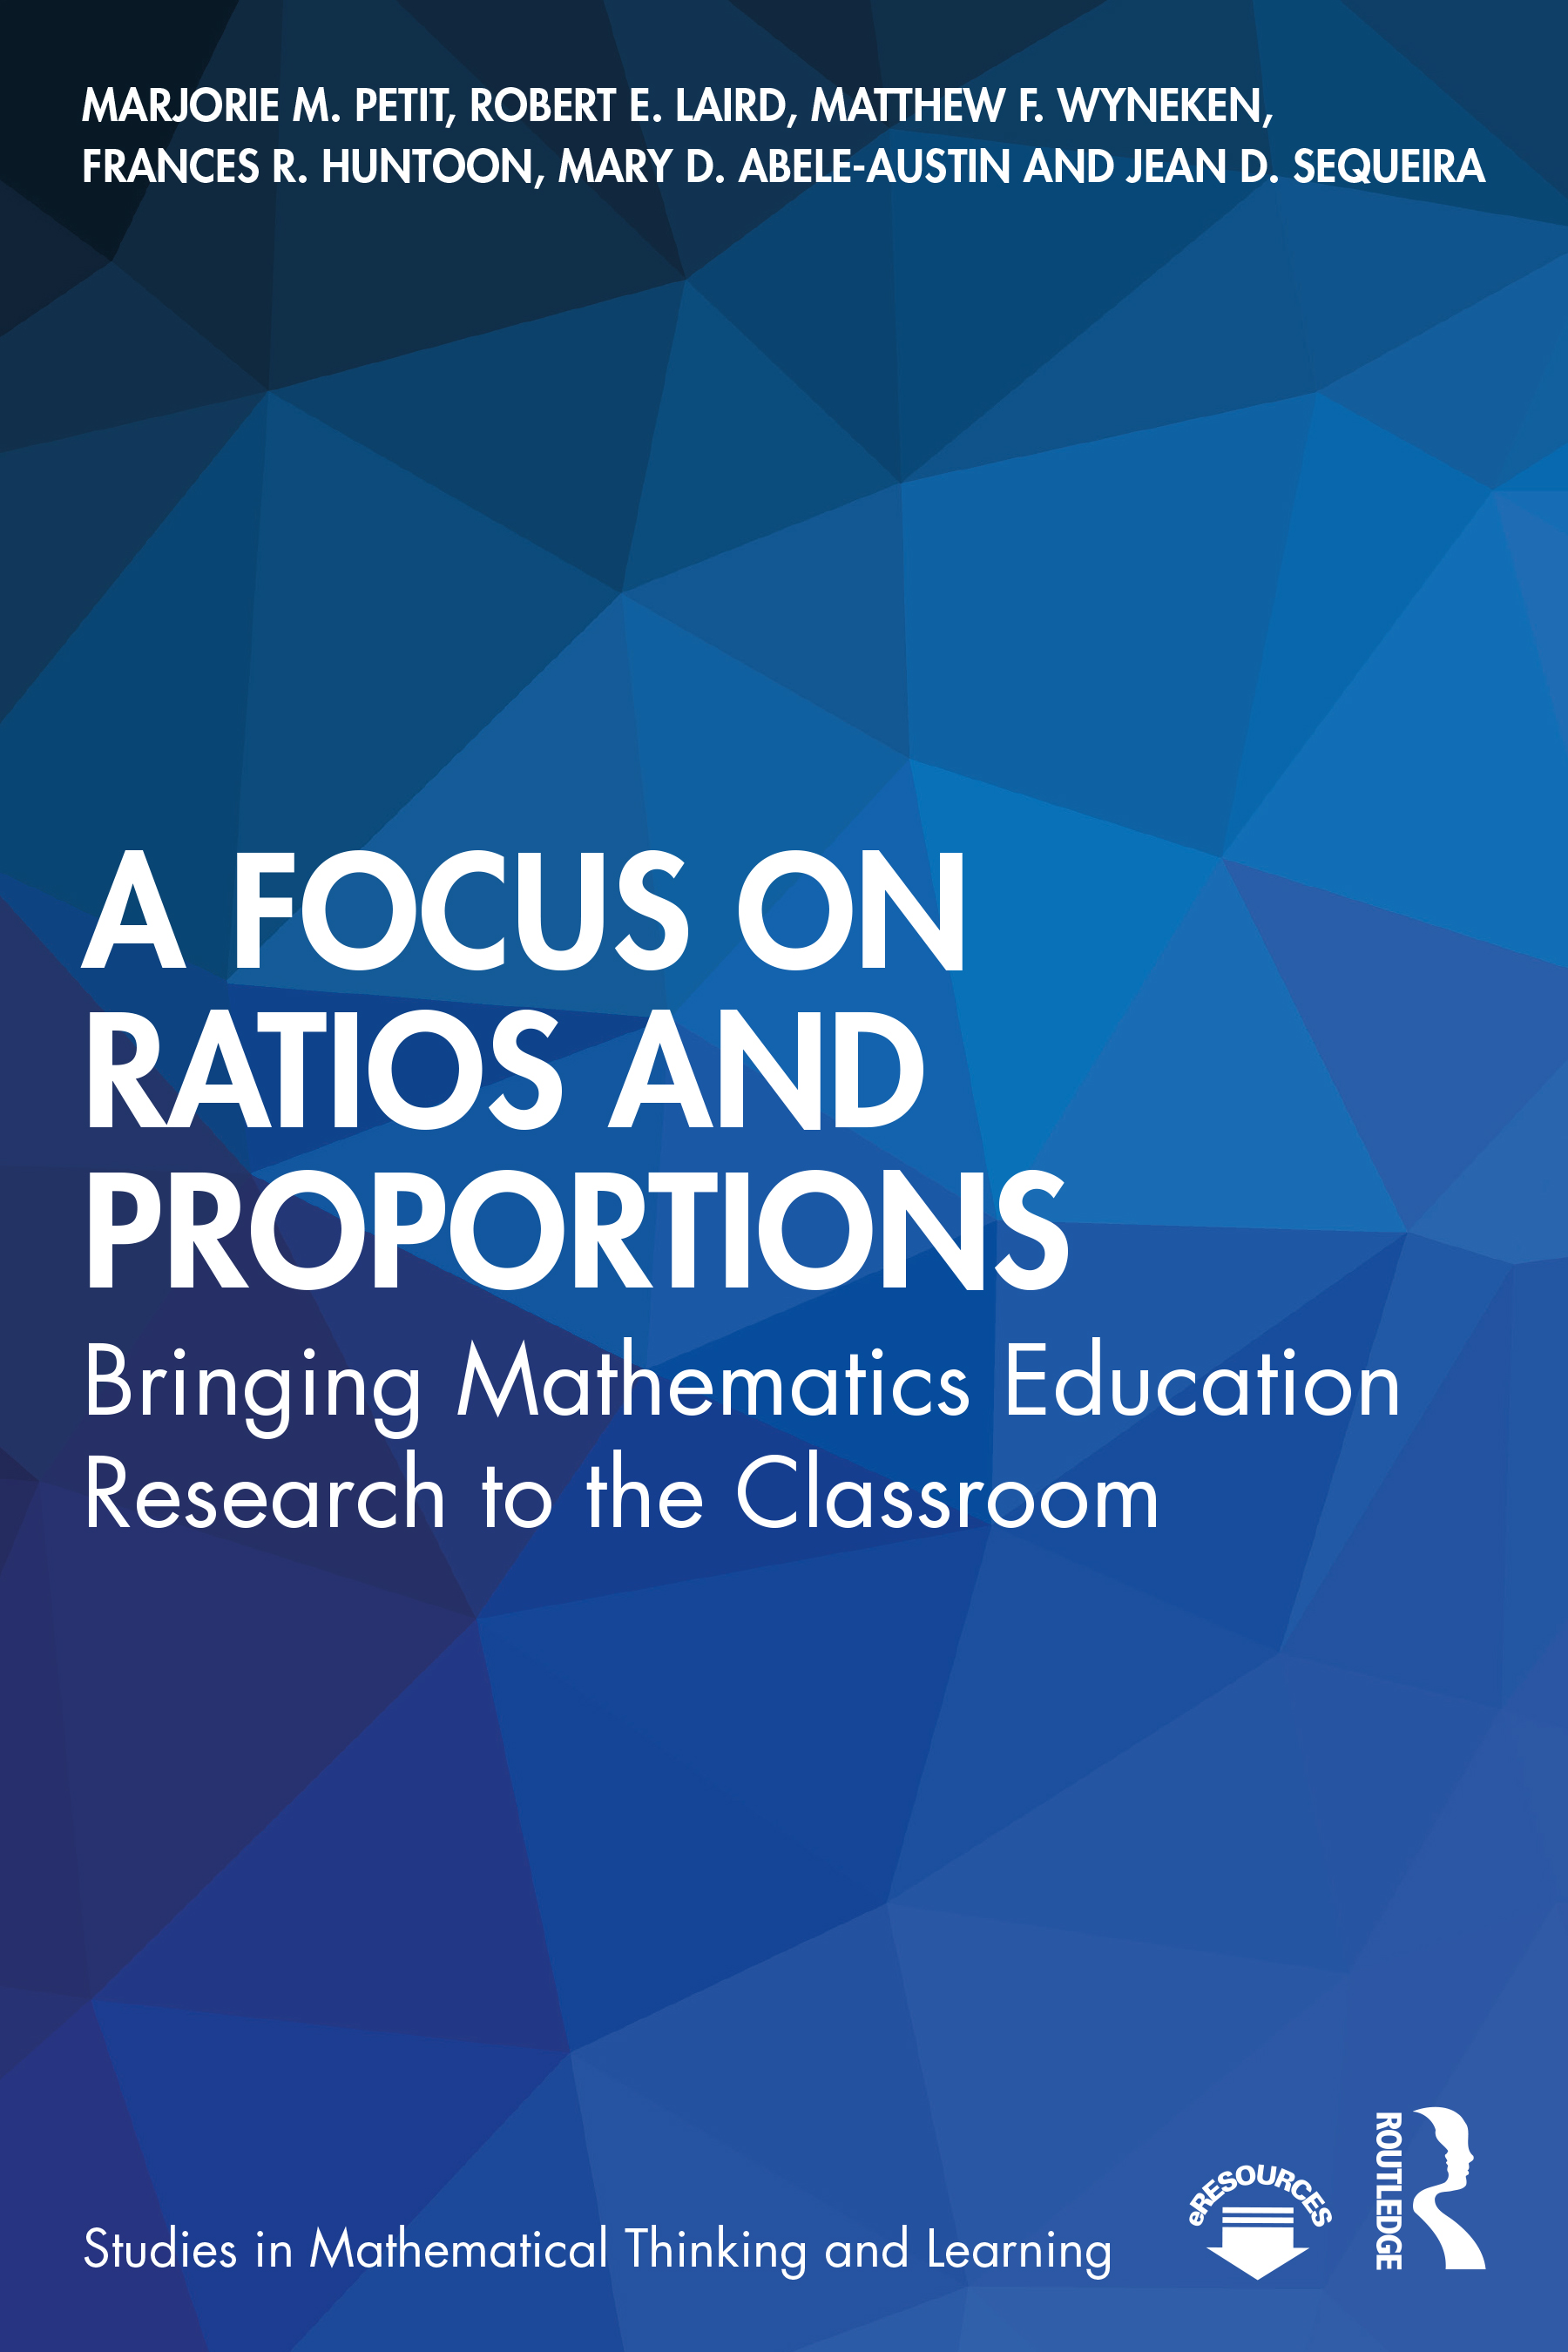 A Focus on Ratios and Proportions: Bringing Mathematics Education Research to the Classroom book cover